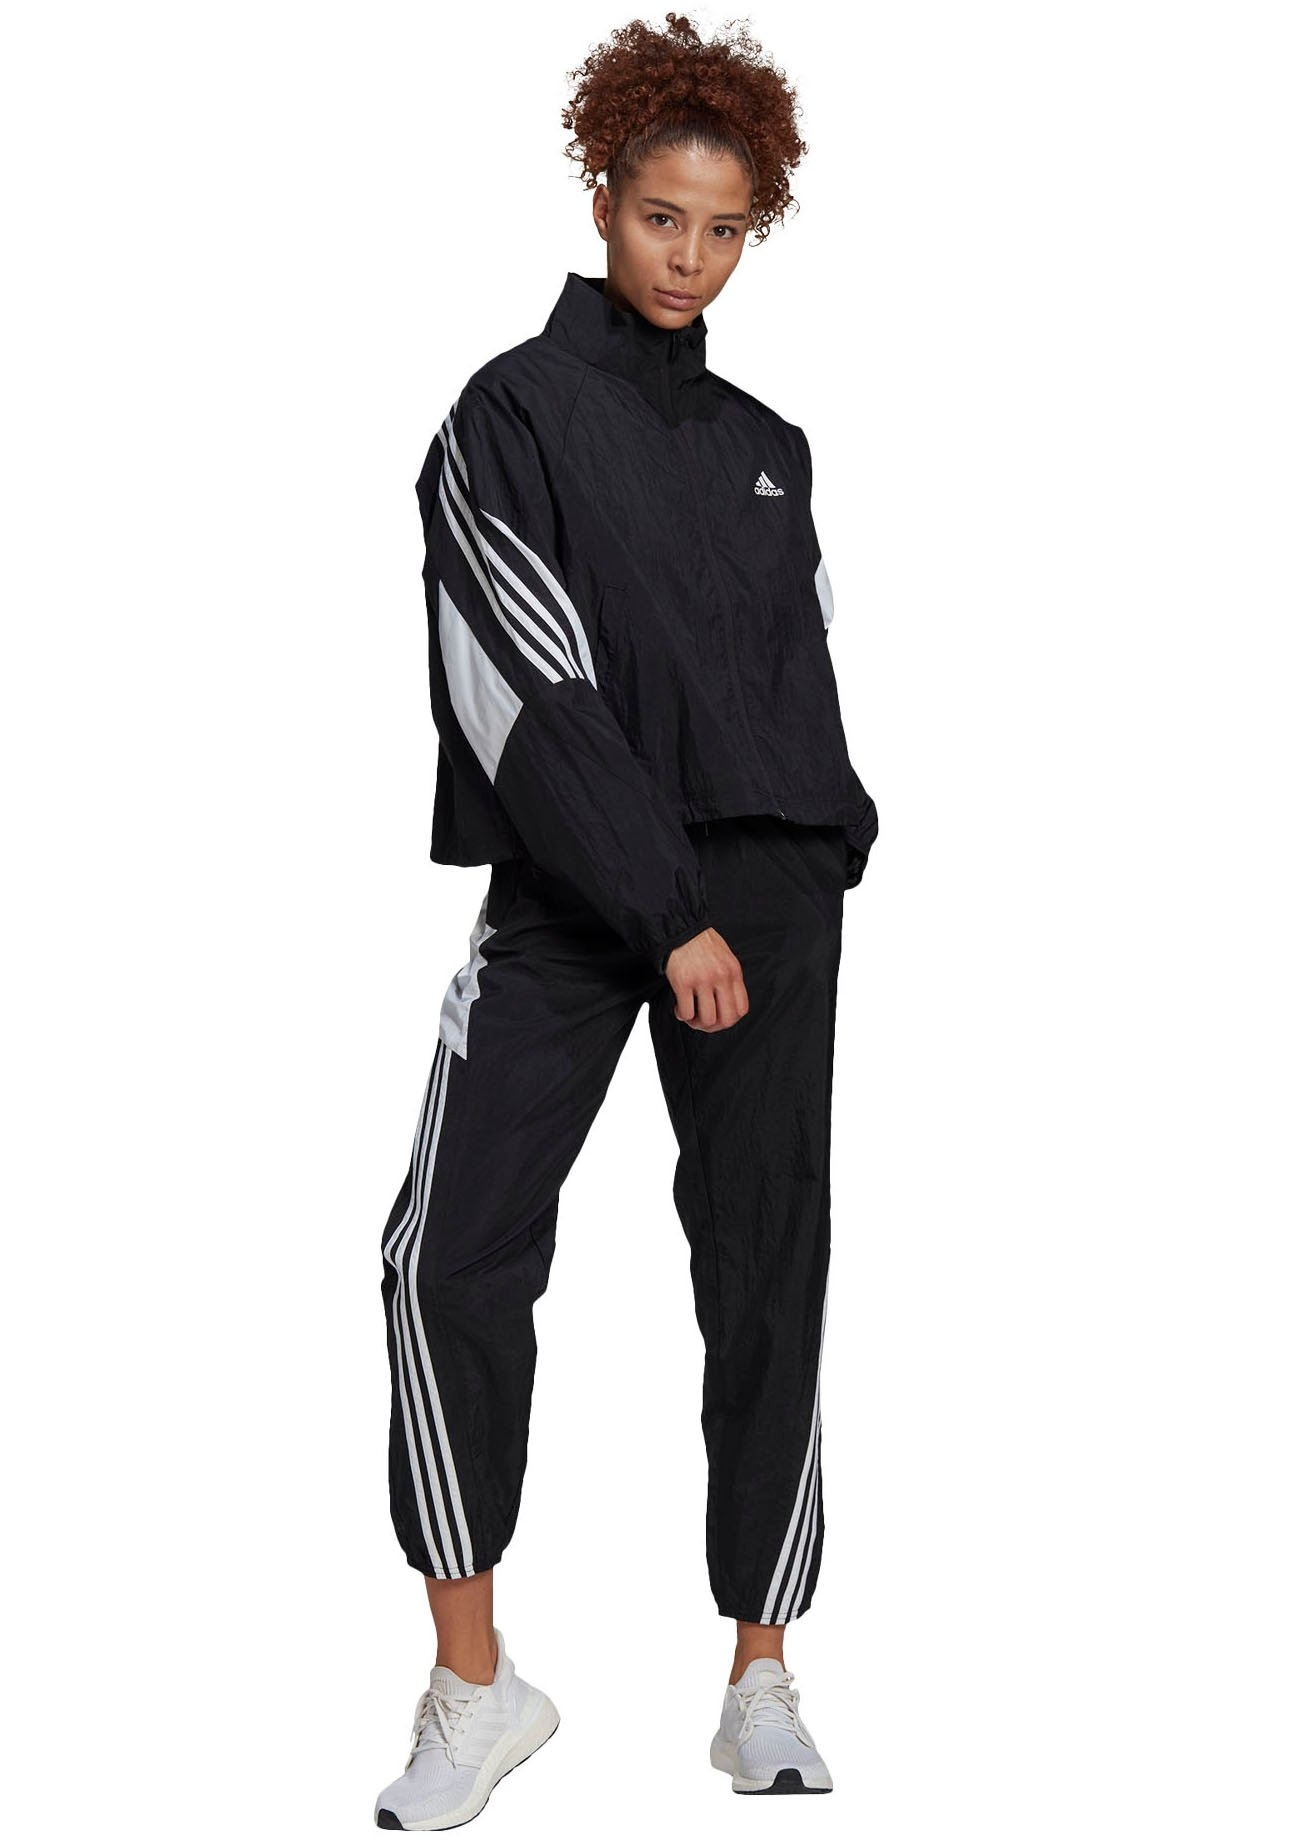 adidas Performance trainingspak (set, 2-delig) - gratis ruilen op otto.nl